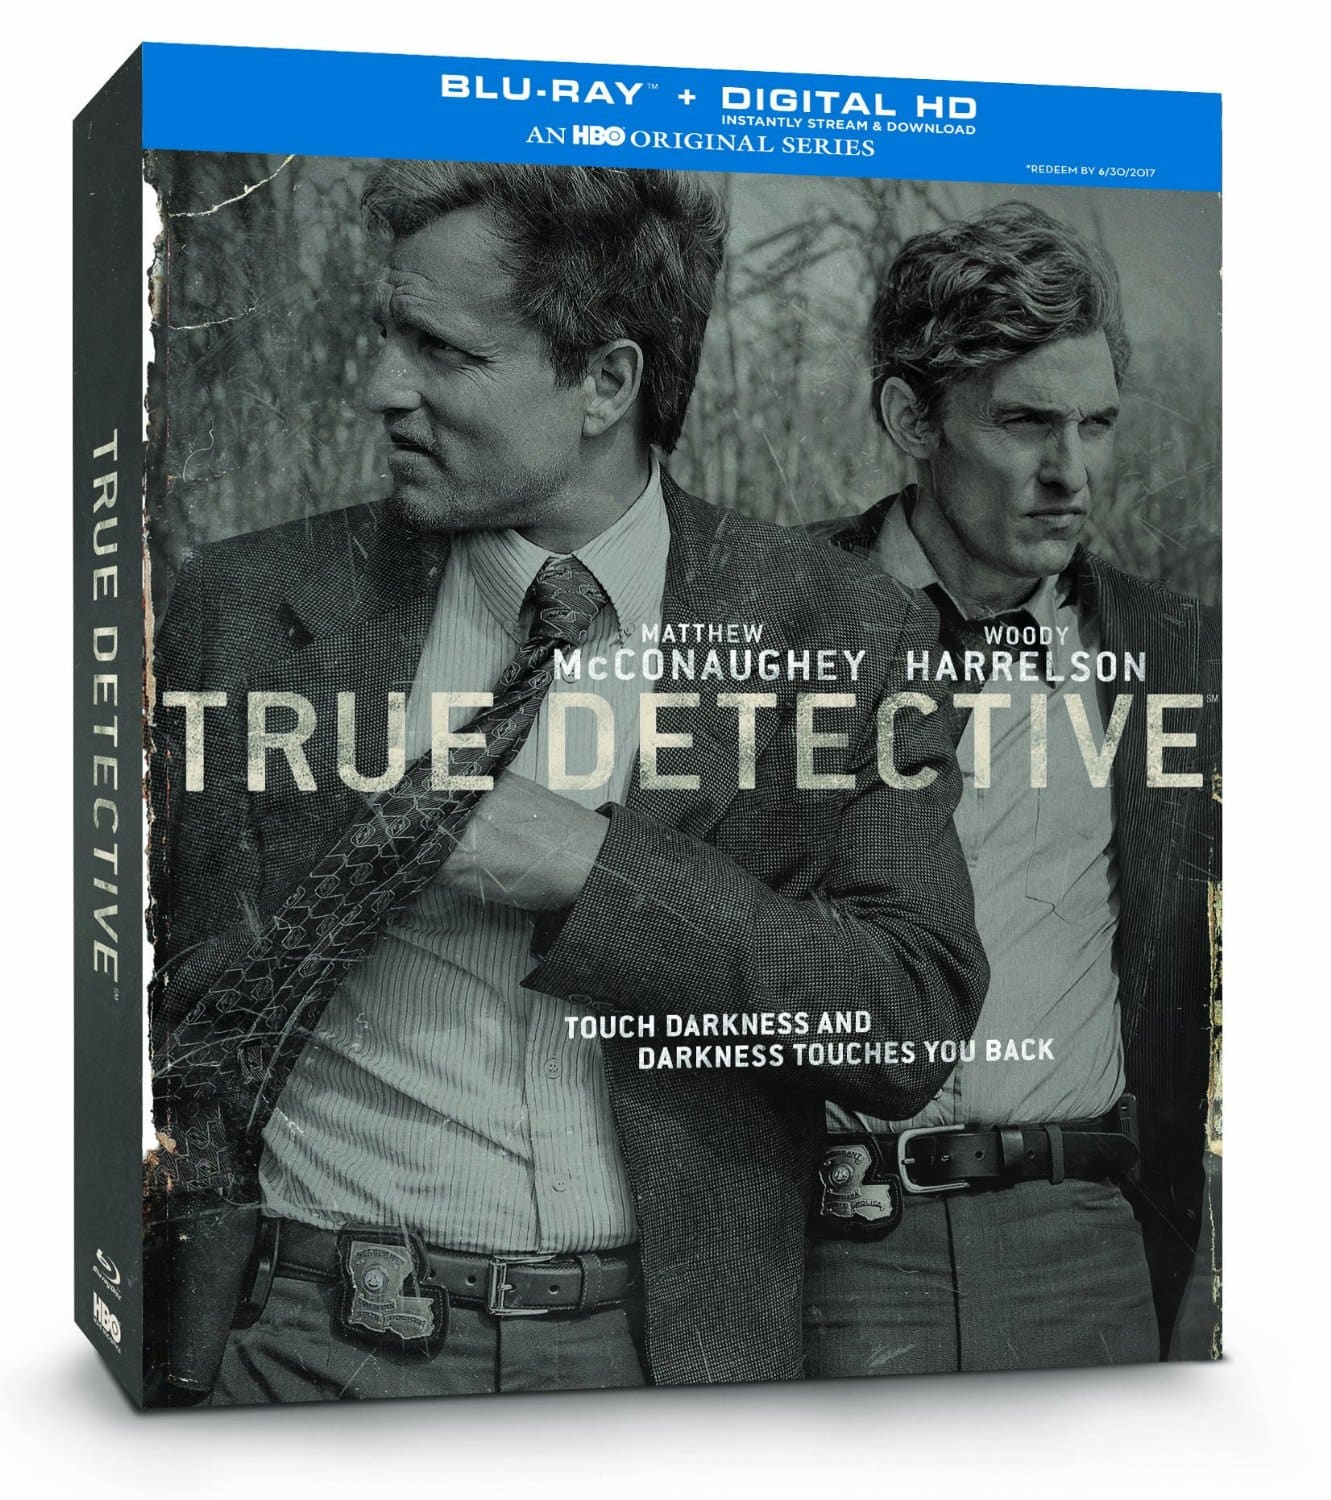 True Detective: The Complete First Season [3 Discs] Blu-ray $9.99 Shipped